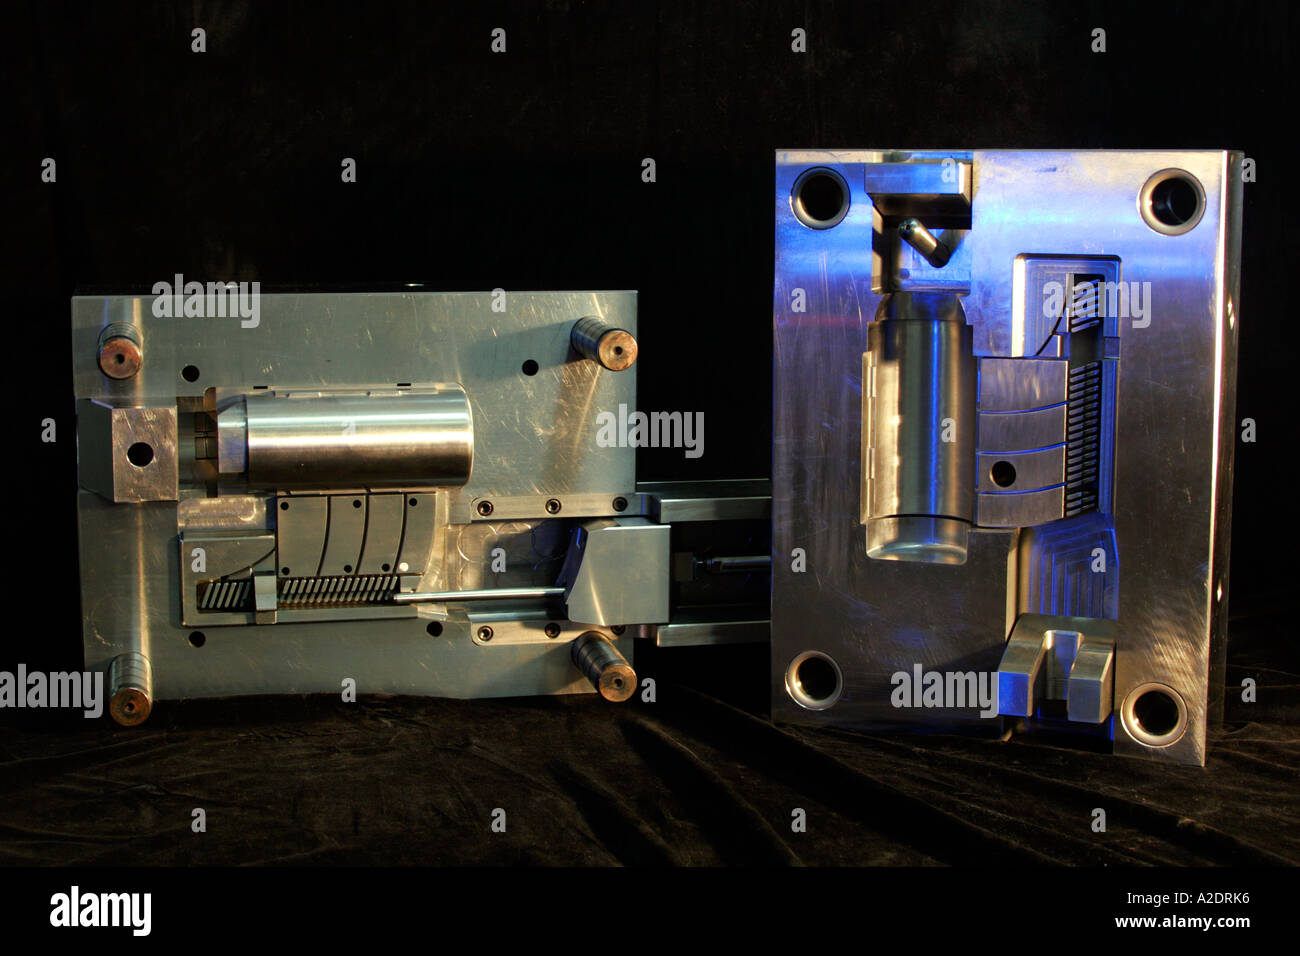 Injection Moulding Machine Stock Photos & Injection Moulding